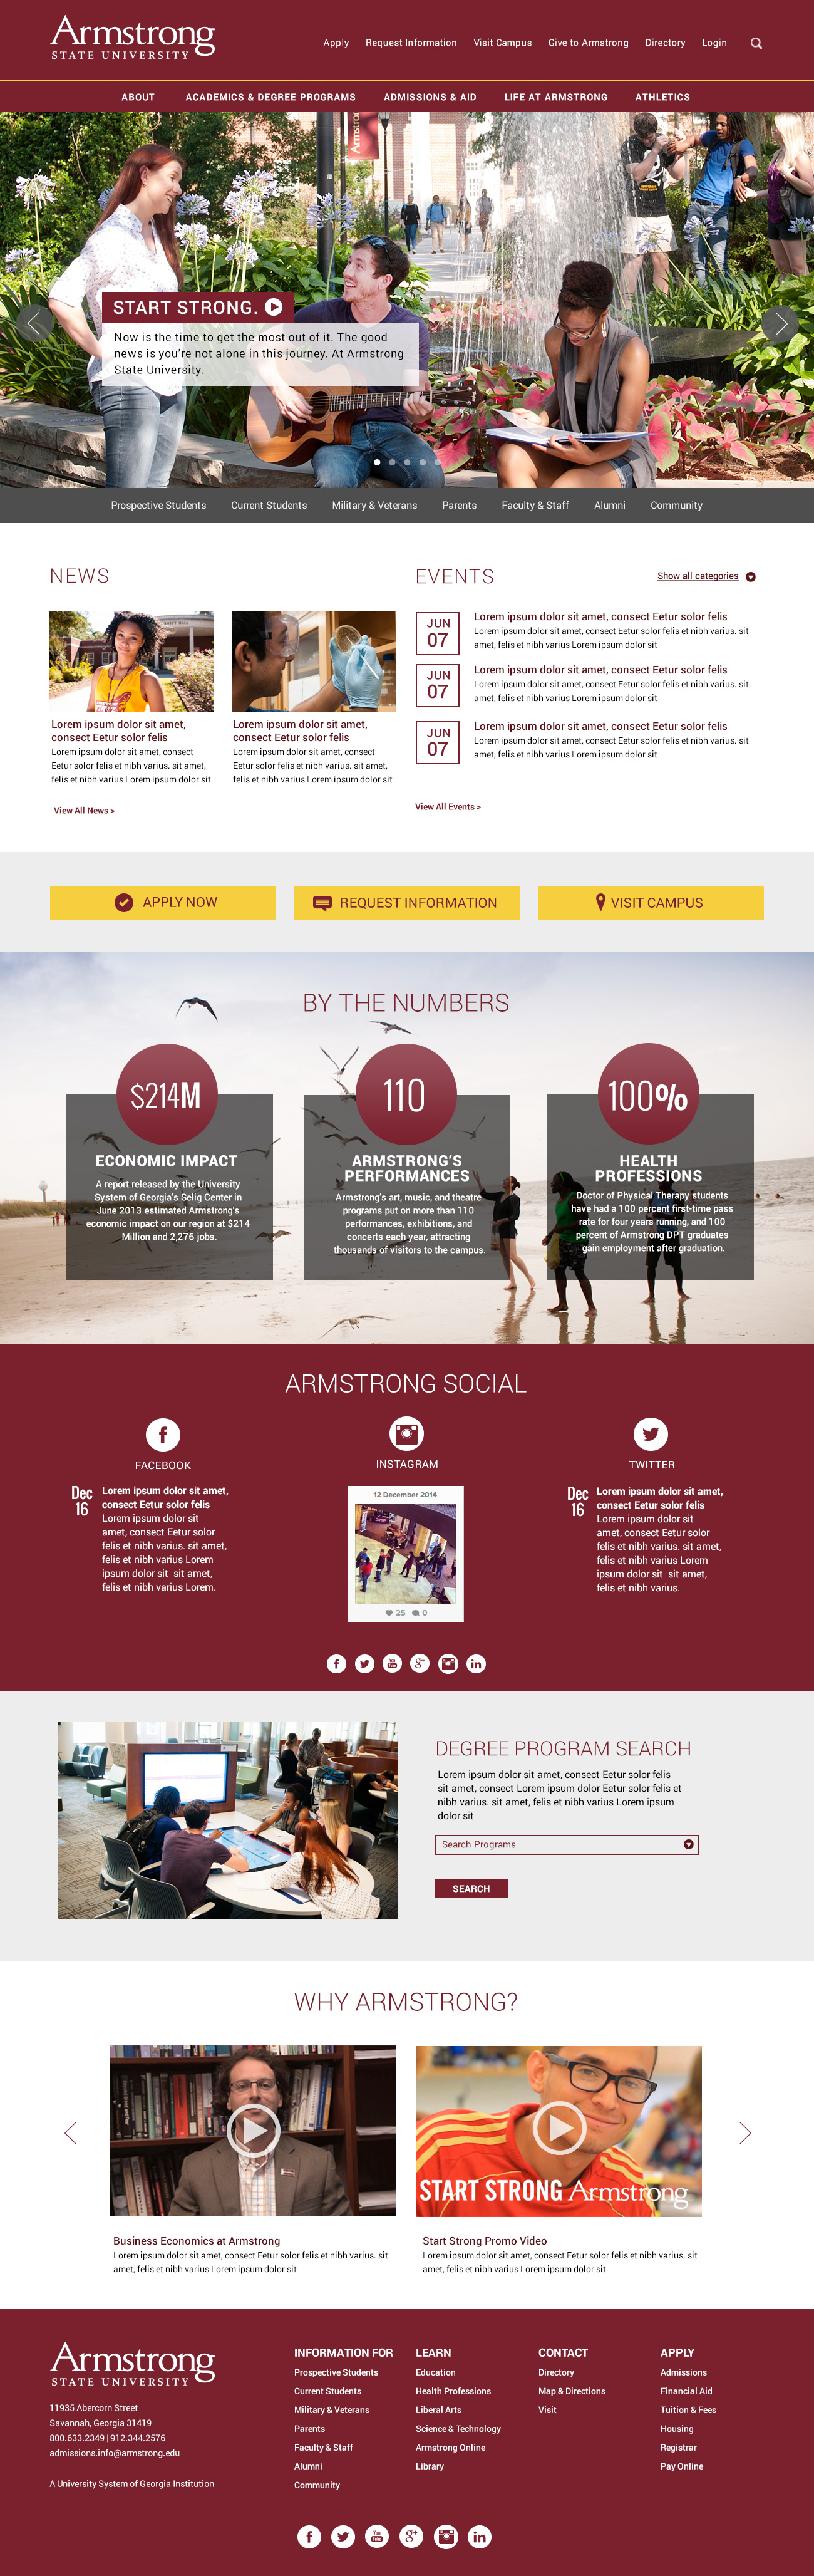 Armstrong-Tier0-Homepage-1170px